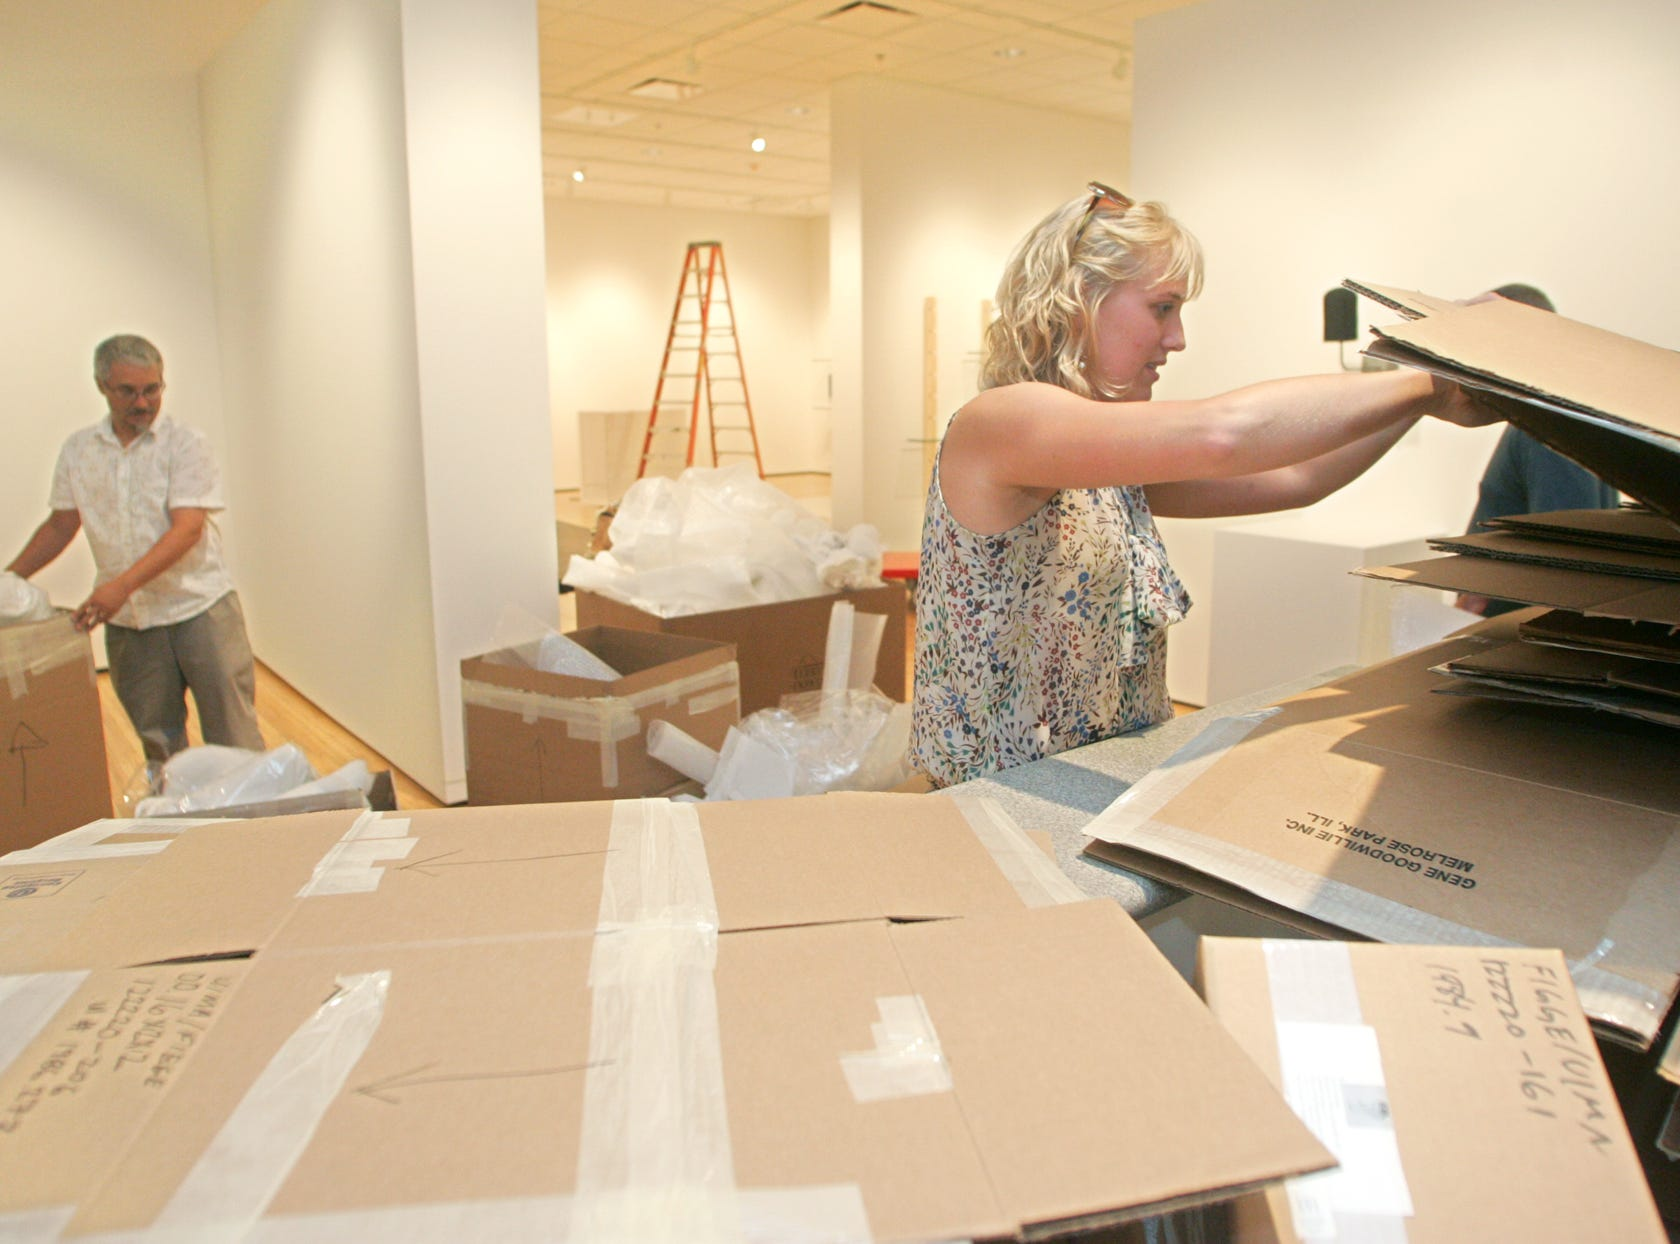 PC photo by Dan Williamson. 8-12-09. University of Iowa Museum of Art Prepator (cq) Steve Erickson, left, and Marketing and Media Manager Maggie Anderson sort through packing material after helping to set up artwork for the new UIMA @ IMU art gallery in the Richey Ballroom at the Iowa Memorial Union on Wednesday, Aug. 12, 2009, in Iowa City.